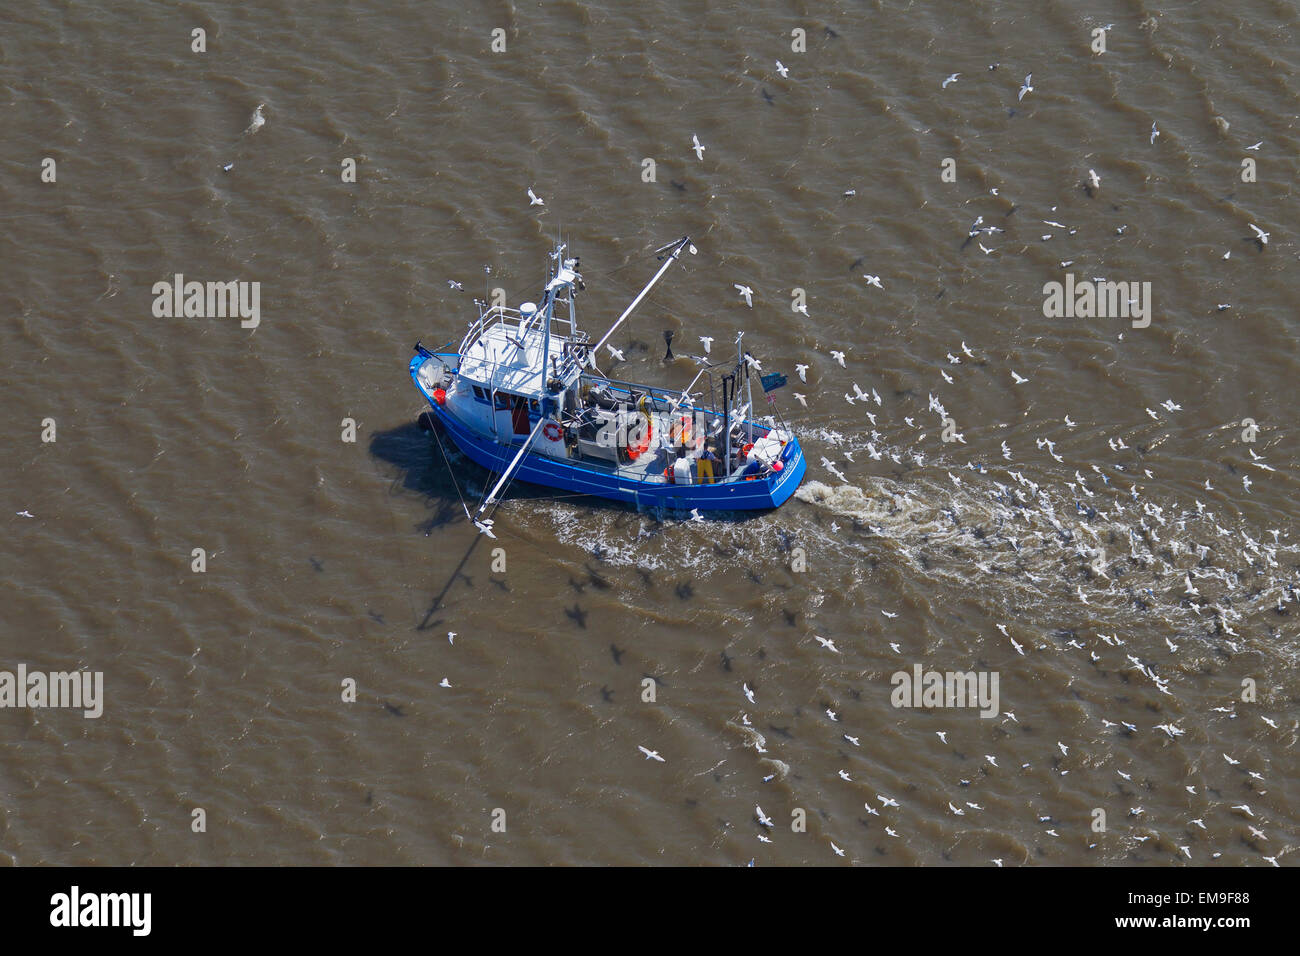 Aerial view of blue shrimp trawler boat fishing for shrimps at sea followed by seagulls Stock Photo